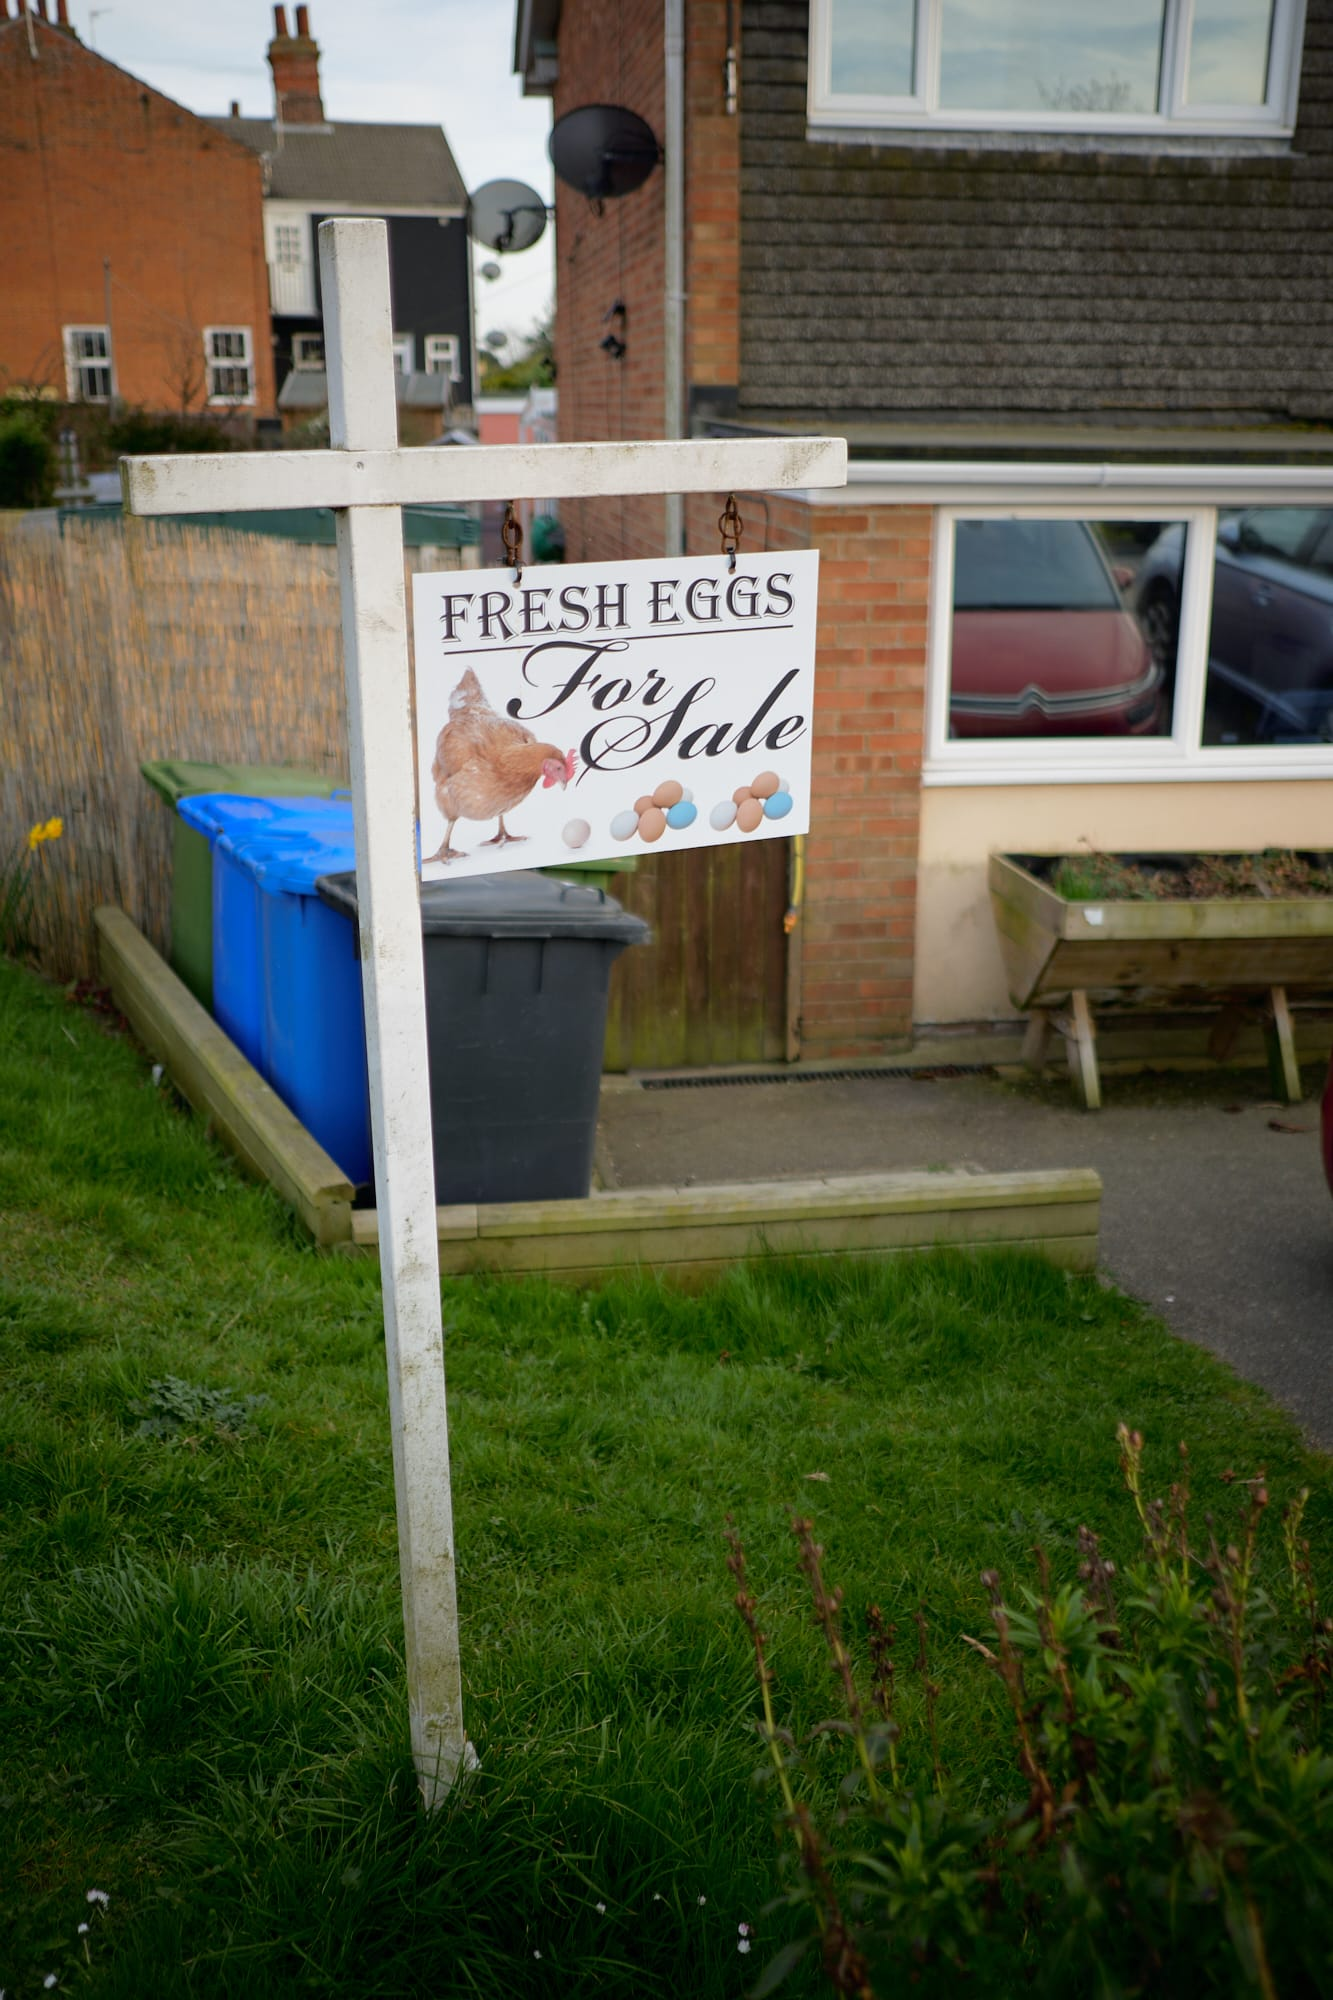 'Fresh Eggs' sign